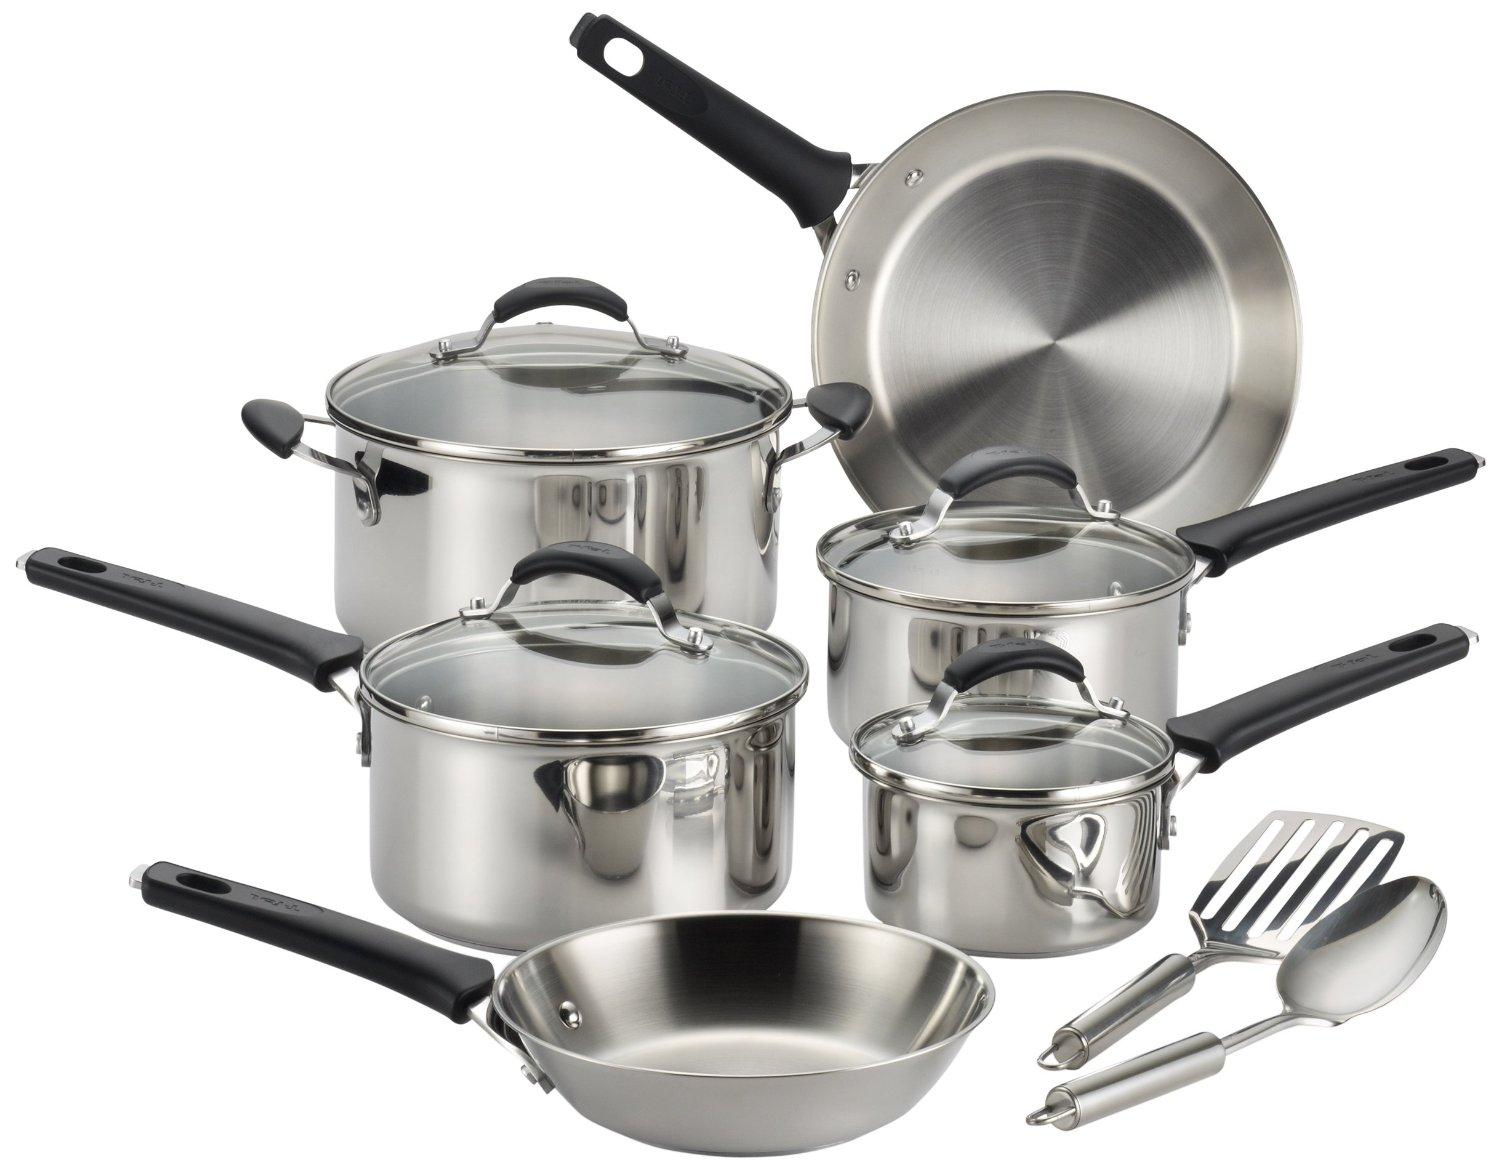 T-fal C813SC Endura Stainless Steel Dishwasher Safe Cookware Set, 12-Piece